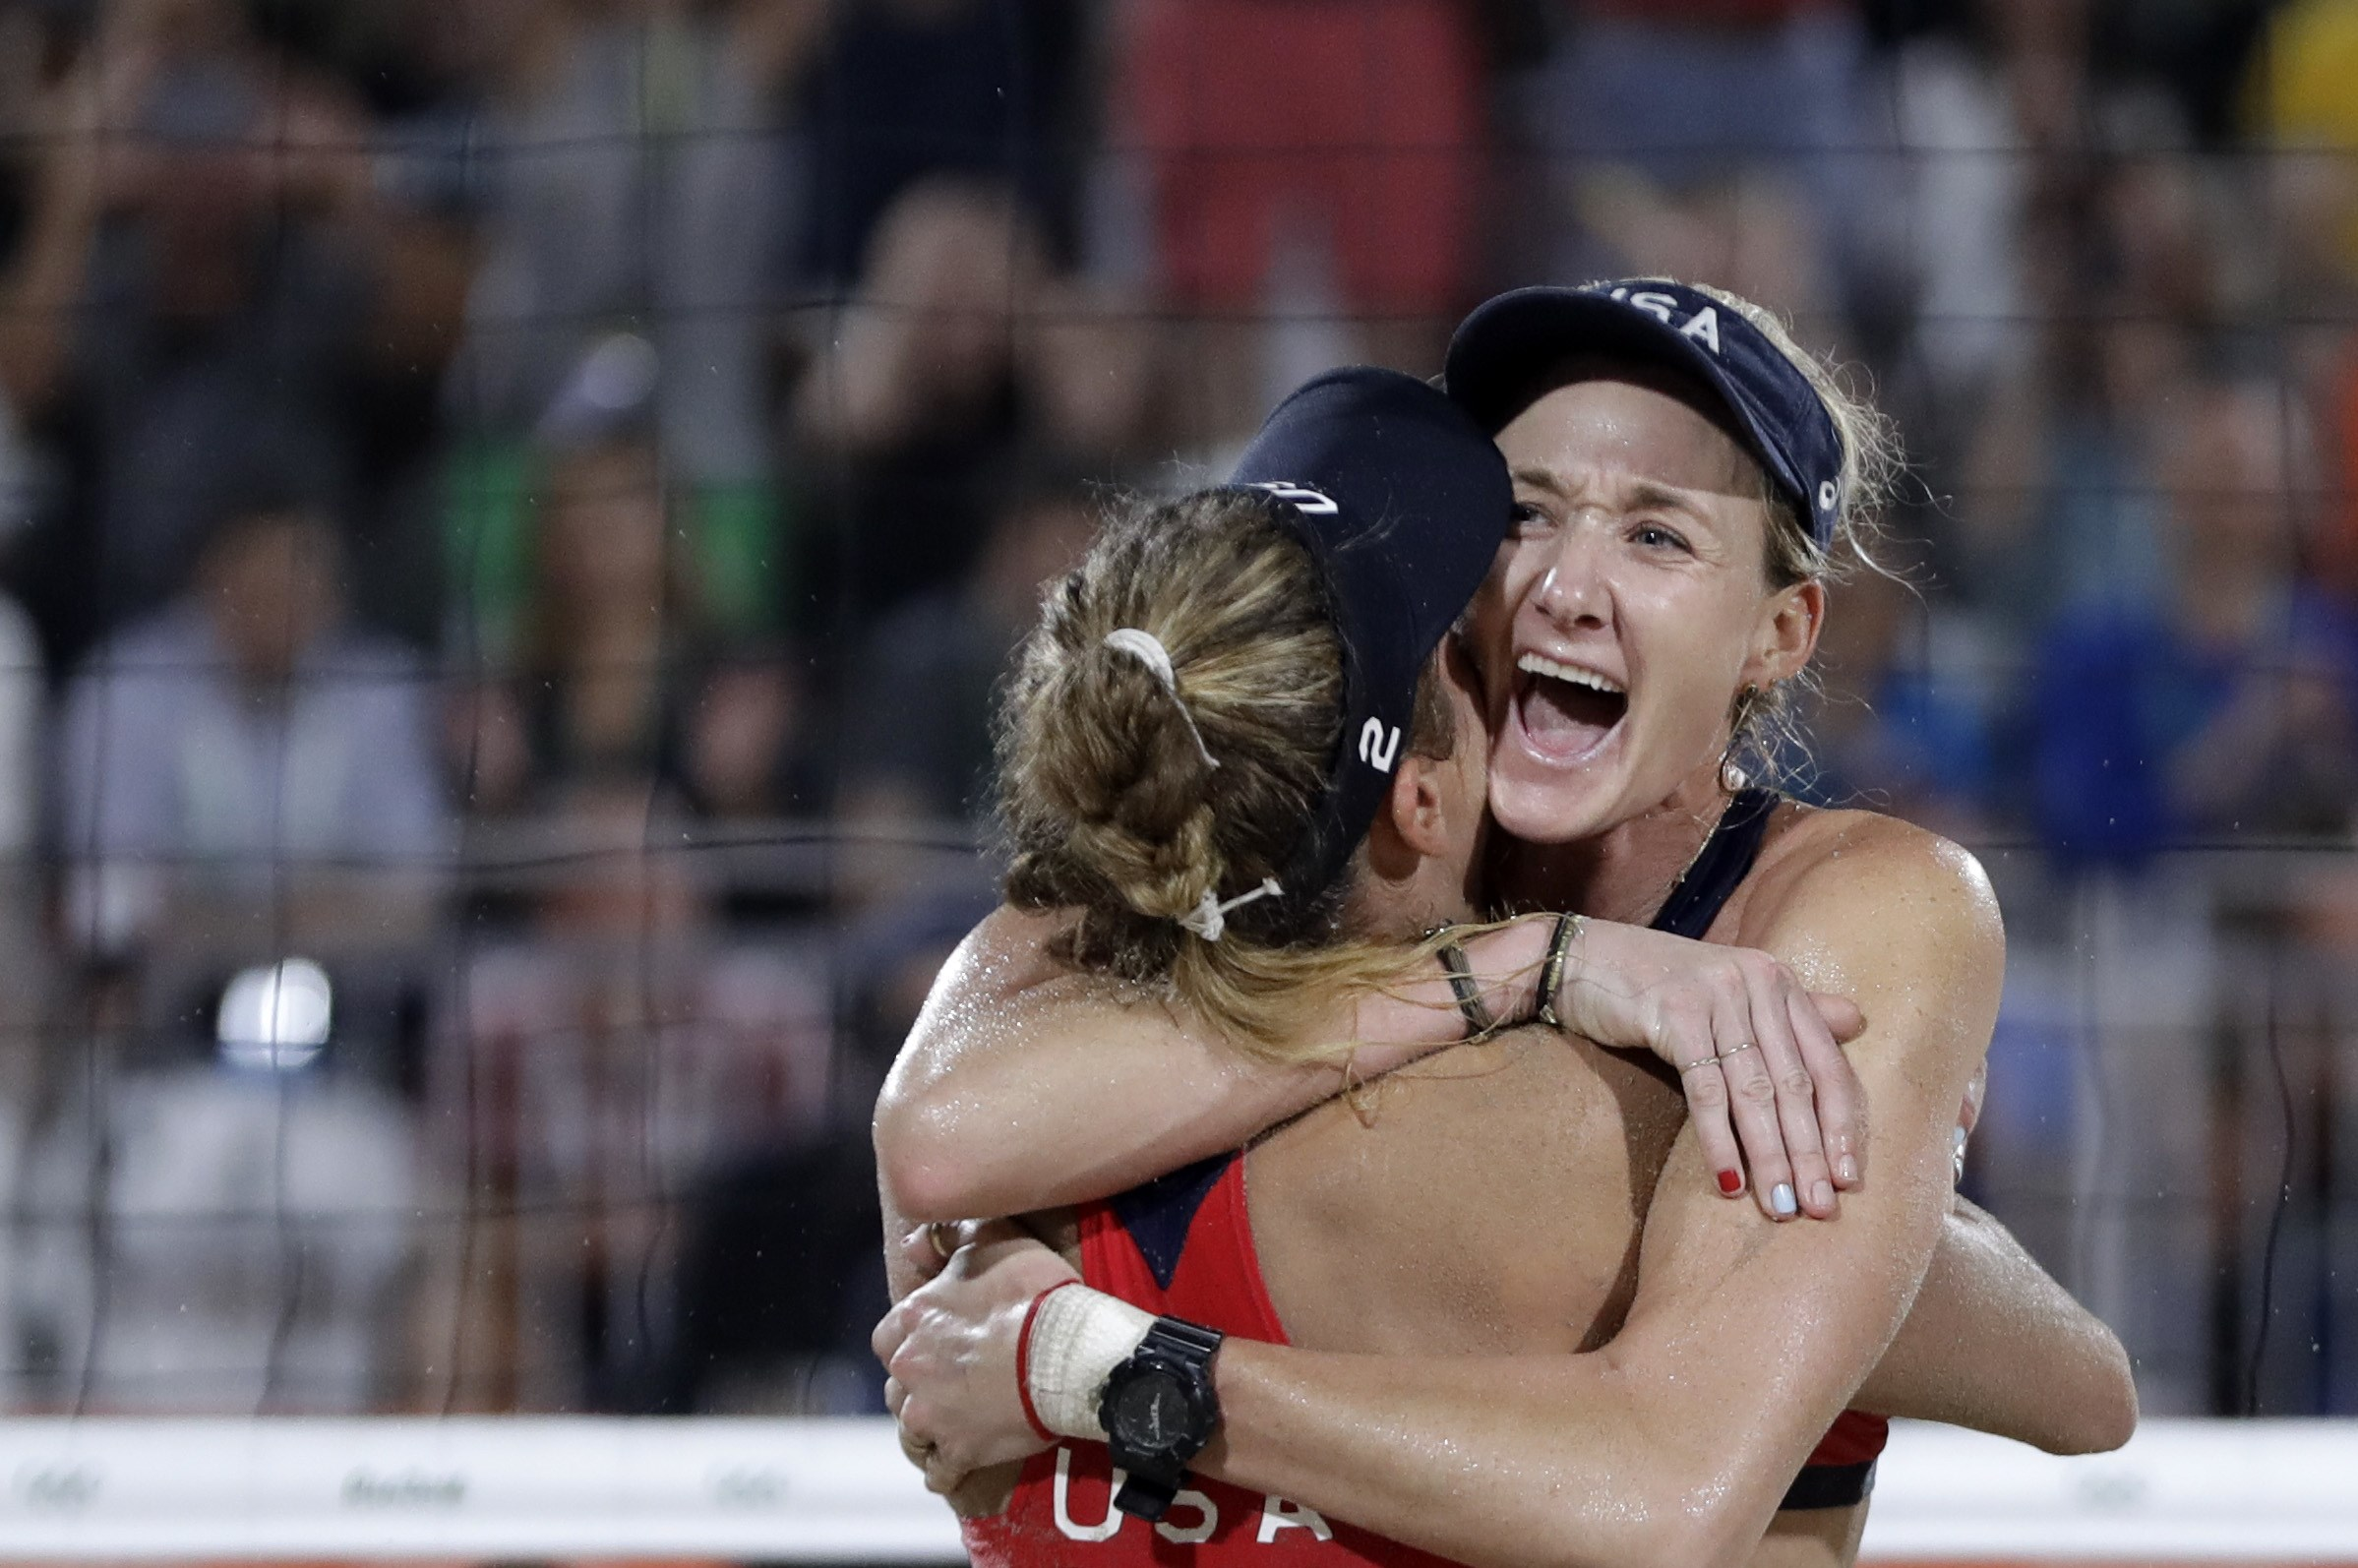 United States' Kerri Walsh Jennings, right, celebrates with teammate April Ross after defeating Brazil during the women's beach volleyball bronze medal match of the 2016 Summer Olympics in Rio de Janeiro, Brazil, Wednesday, Aug. 17, 2016. (AP Photo/Petr D